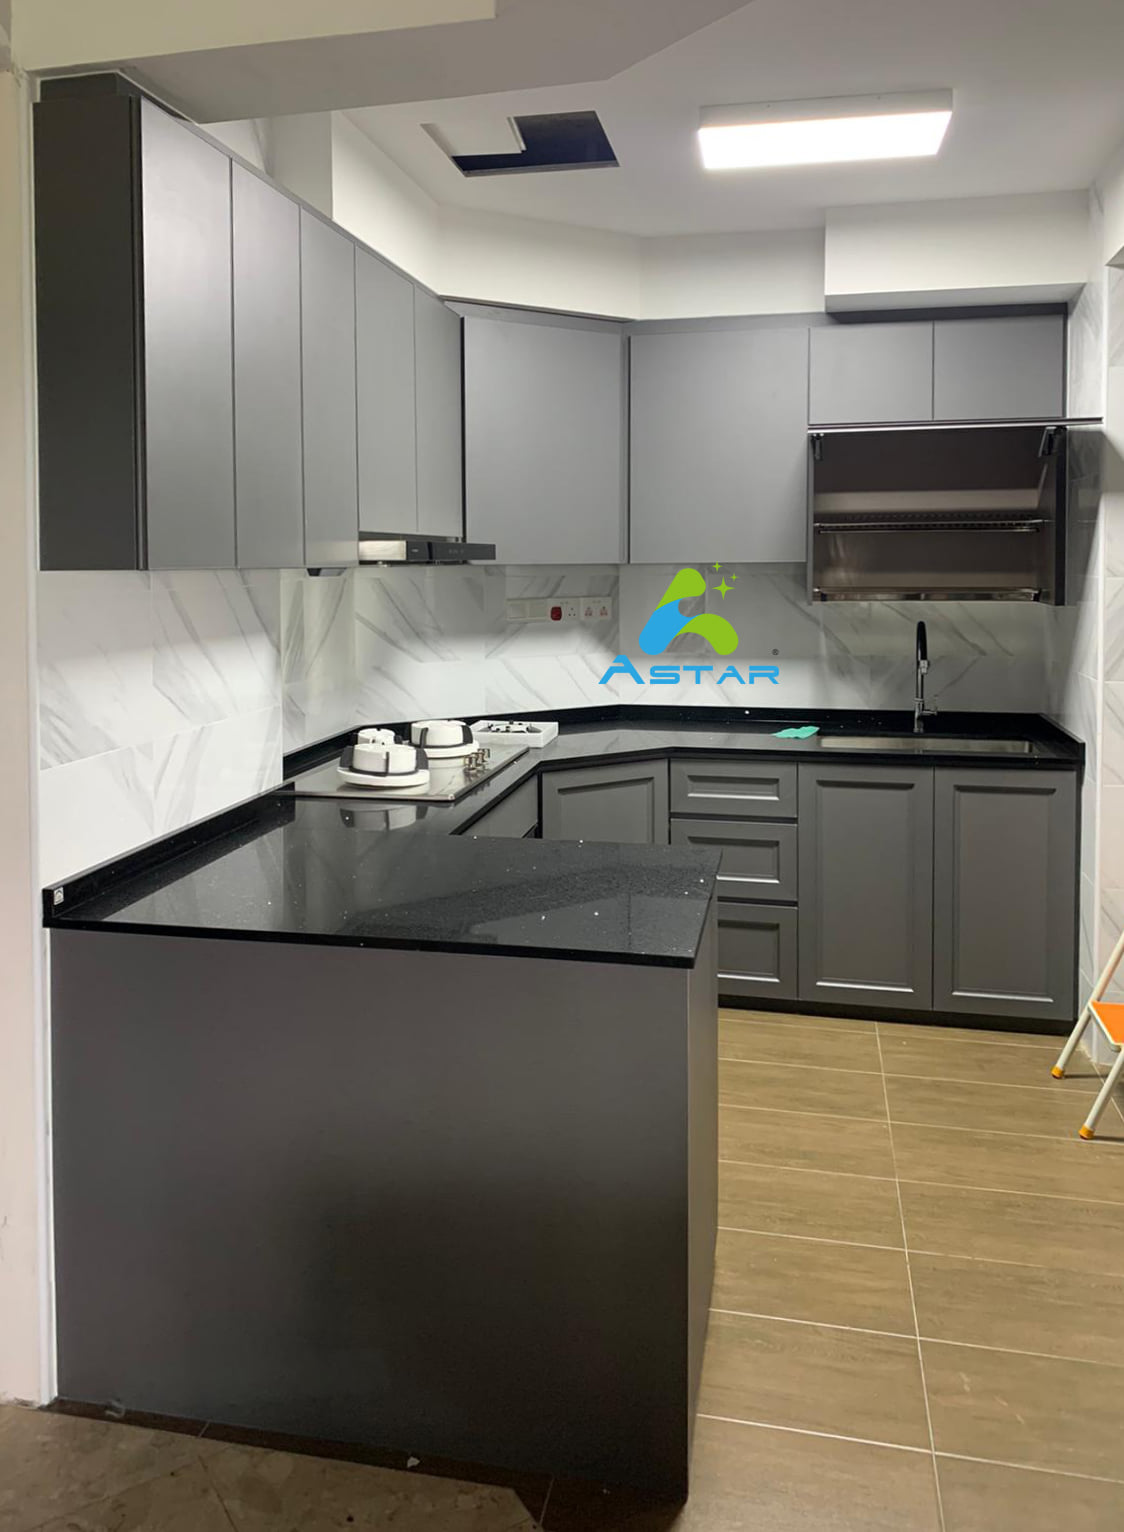 a star furnishing projects Blk 39 Pasir Ris Dr 3 5